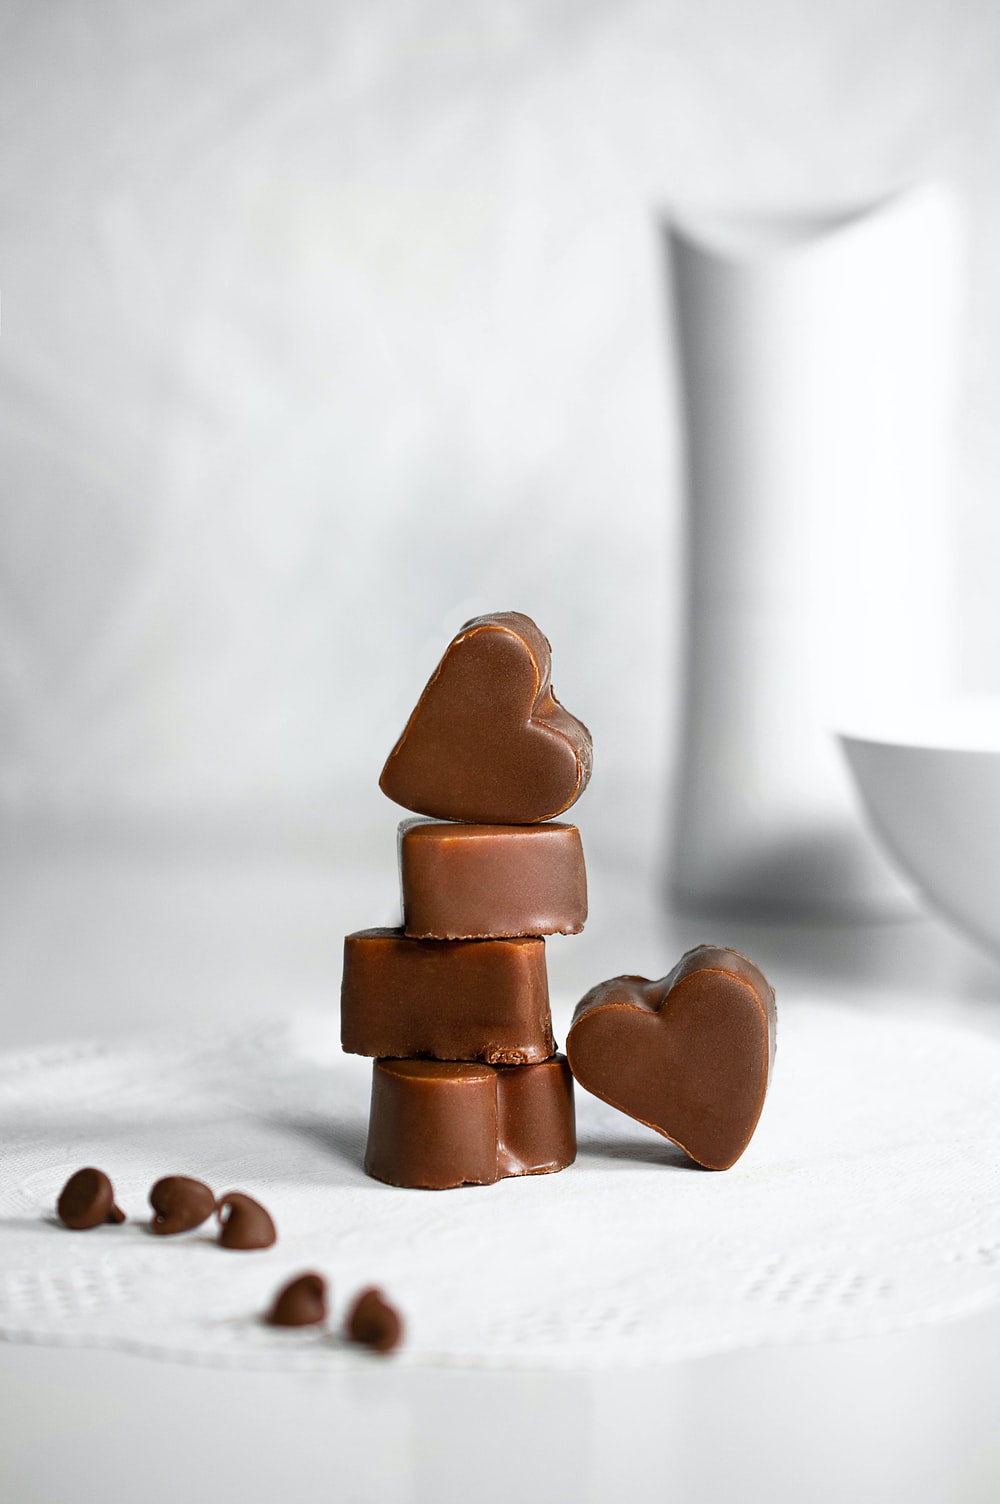 brown wooden heart shaped figurine